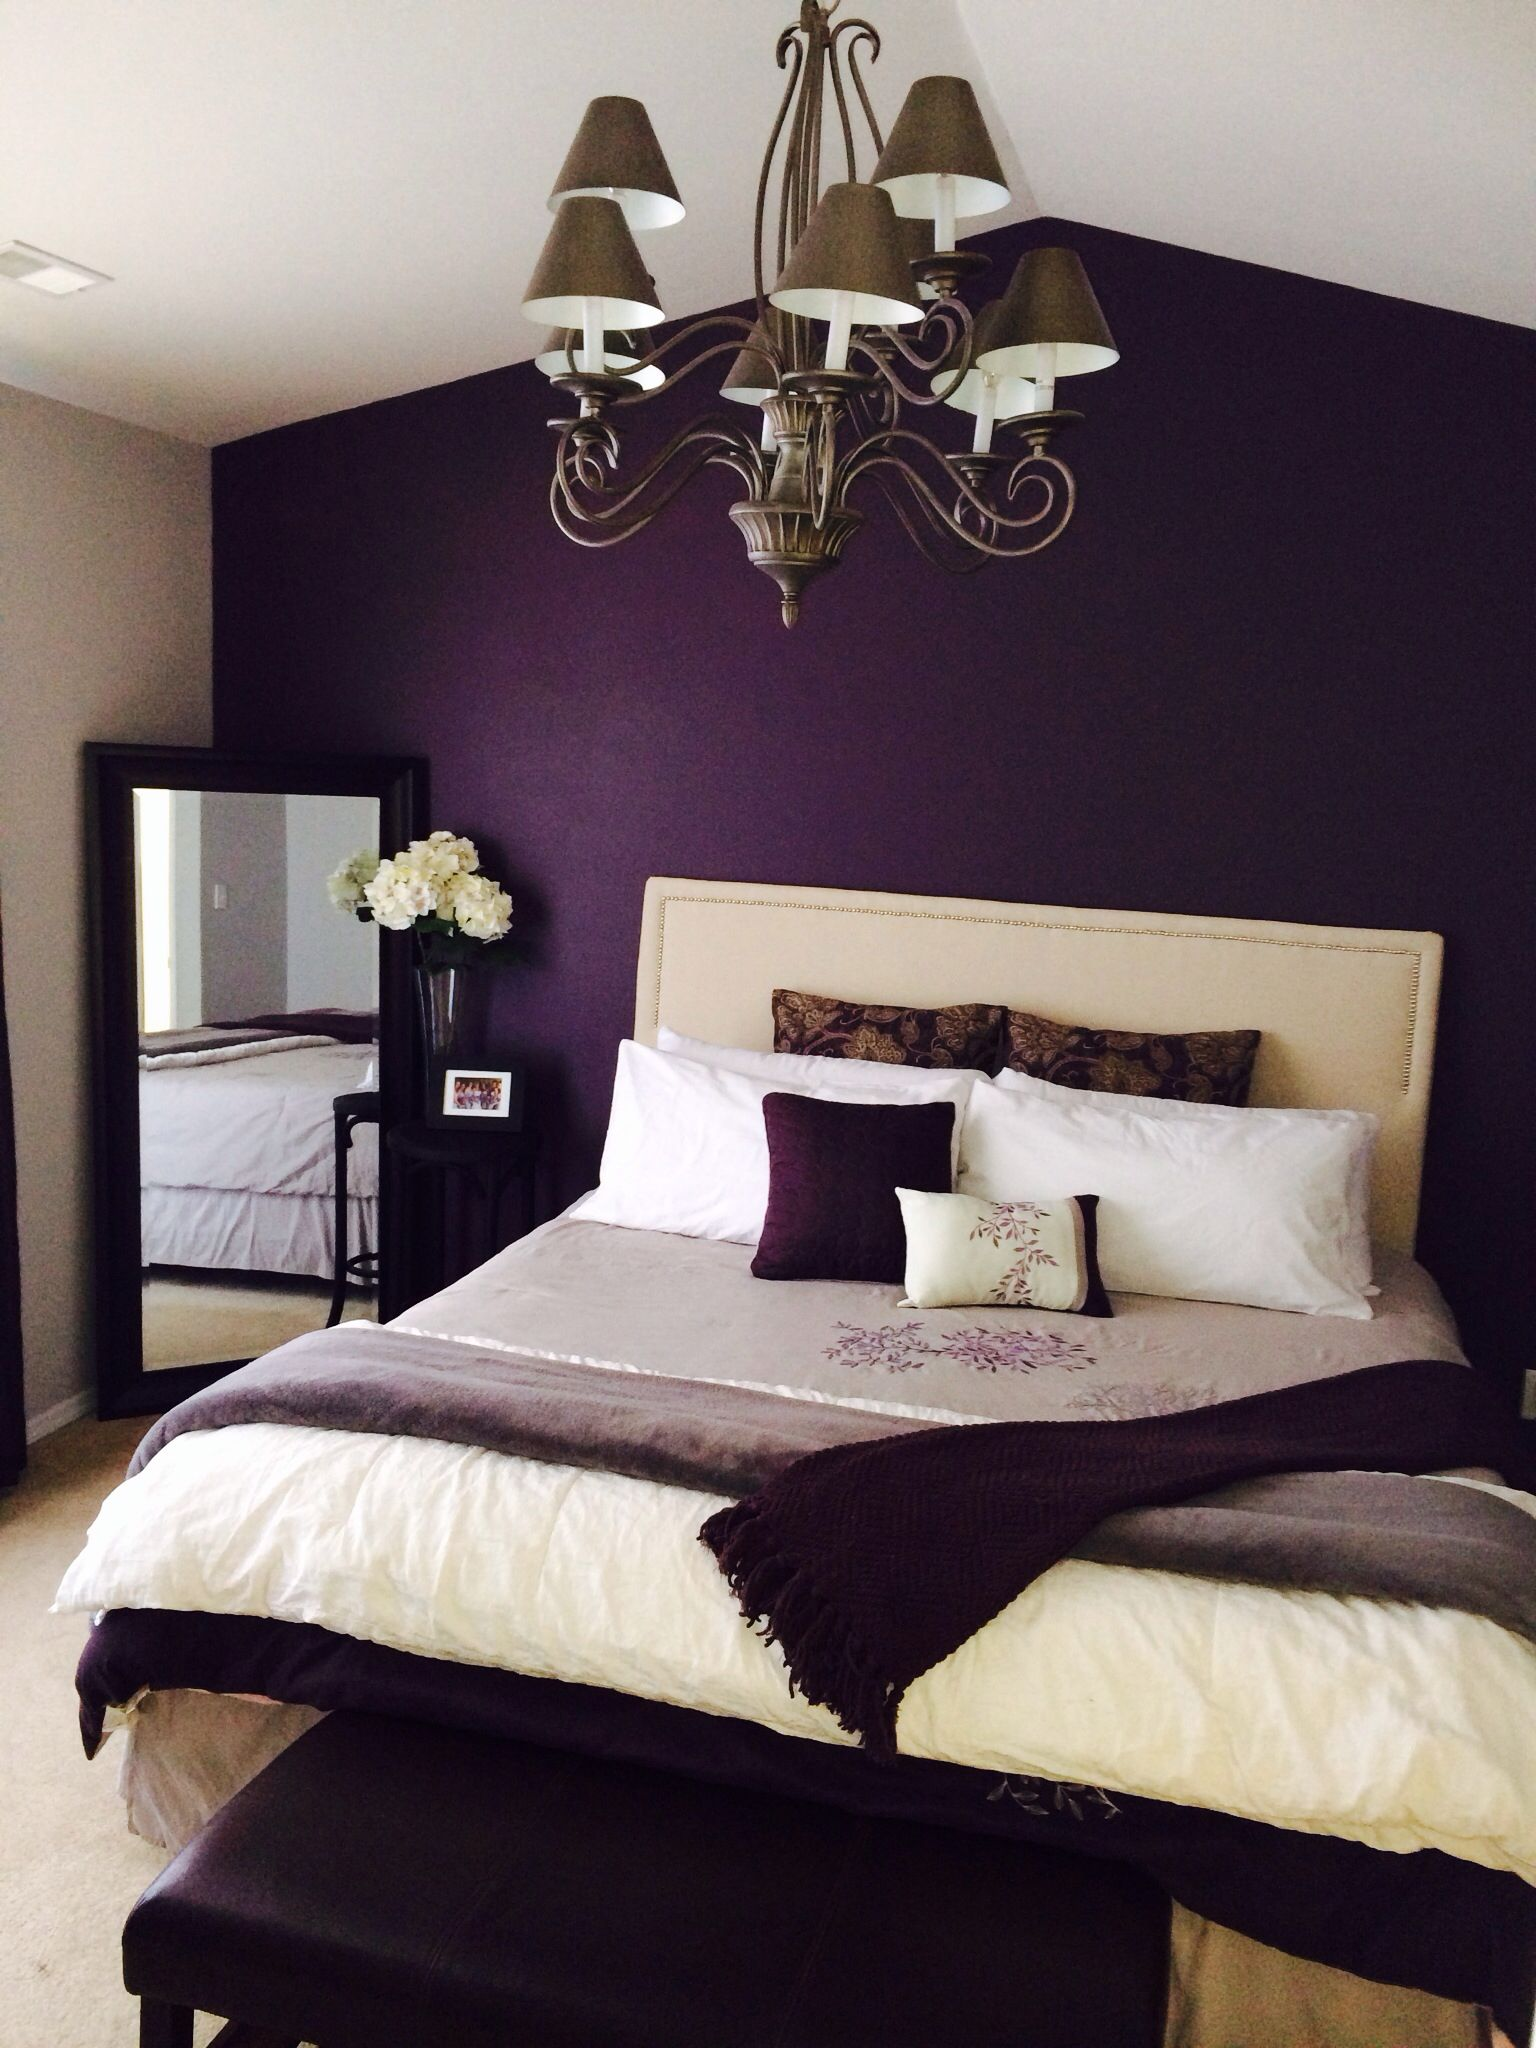 Black and purple bedroom - Latest 30 Romantic Bedroom Ideas To Make The Love Happen